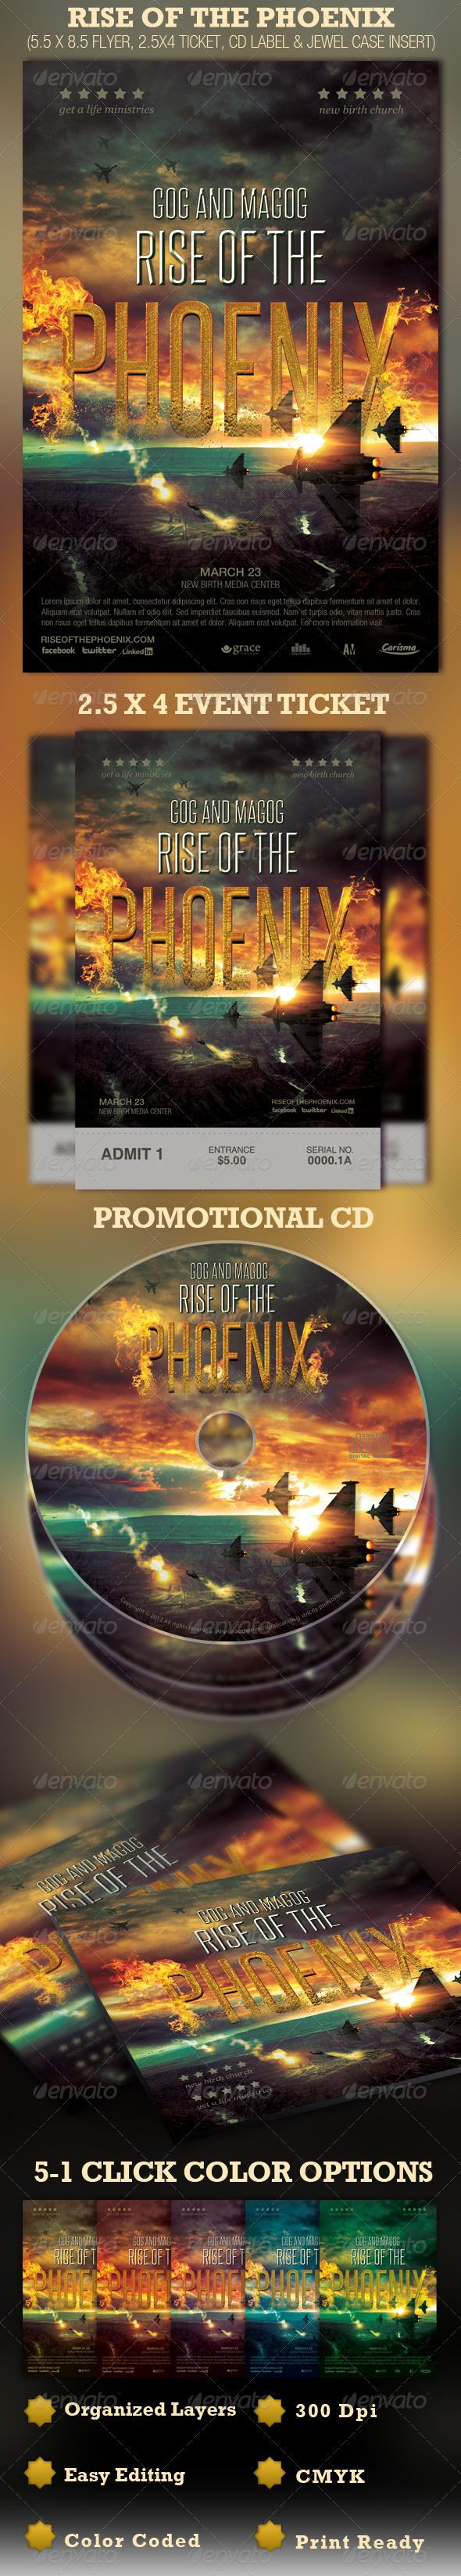 Rise of the Phoenix Flyer, Ticket and CD Template — Photoshop PSD #flyer designs #cd template • Available here → https://graphicriver.net/item/rise-of-the-phoenix-flyer-ticket-and-cd-template/1708448?ref=pxcr